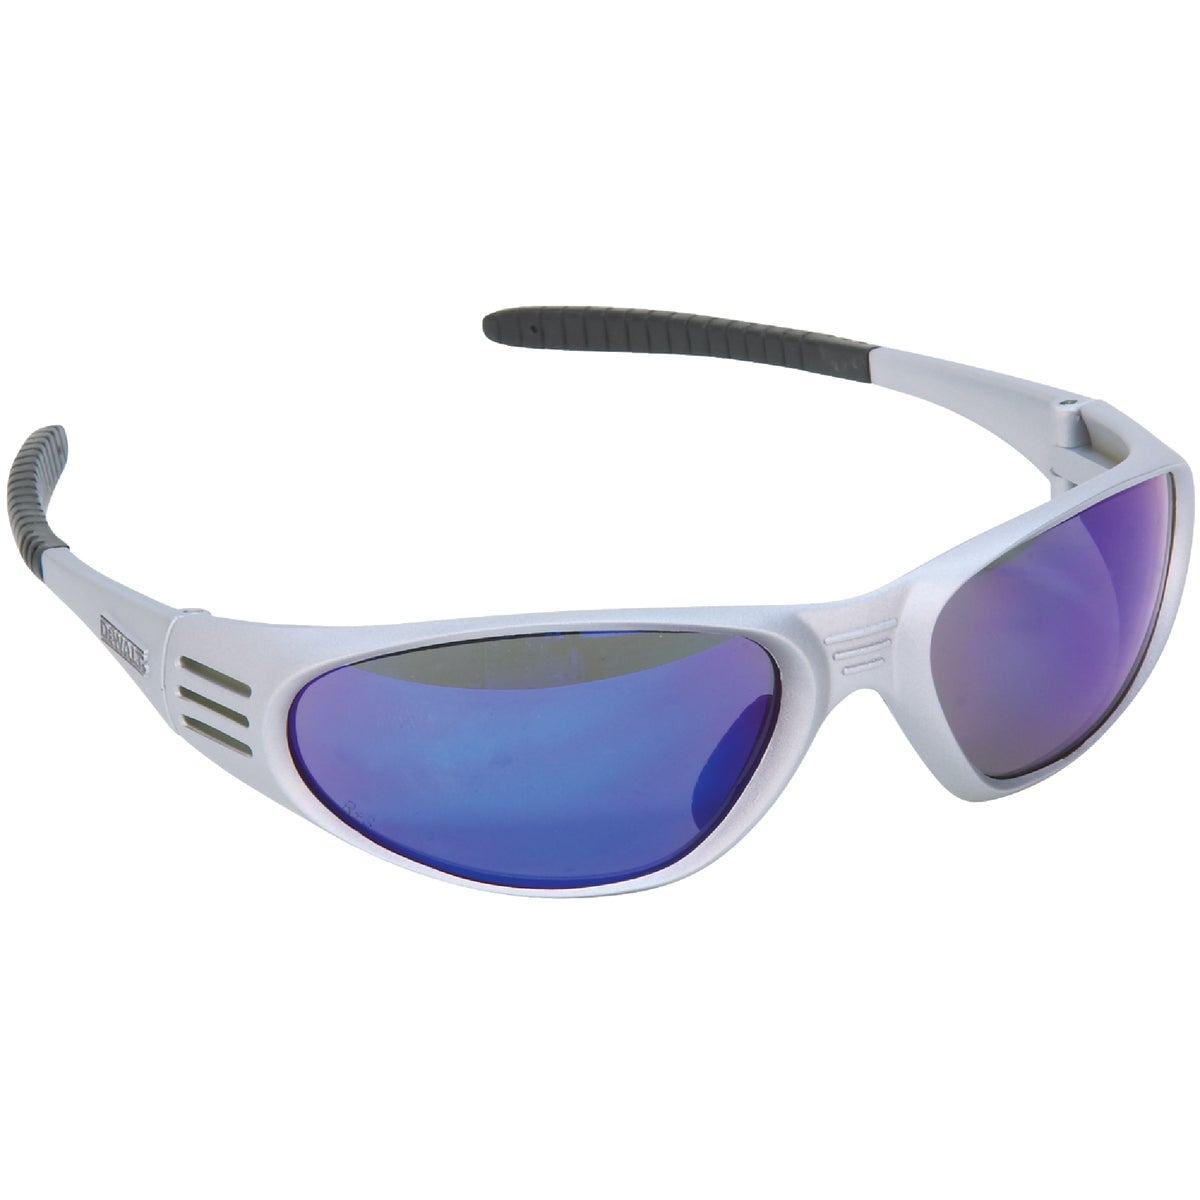 BLUE SAFETY GLASSES - DPG56-7C by Radians